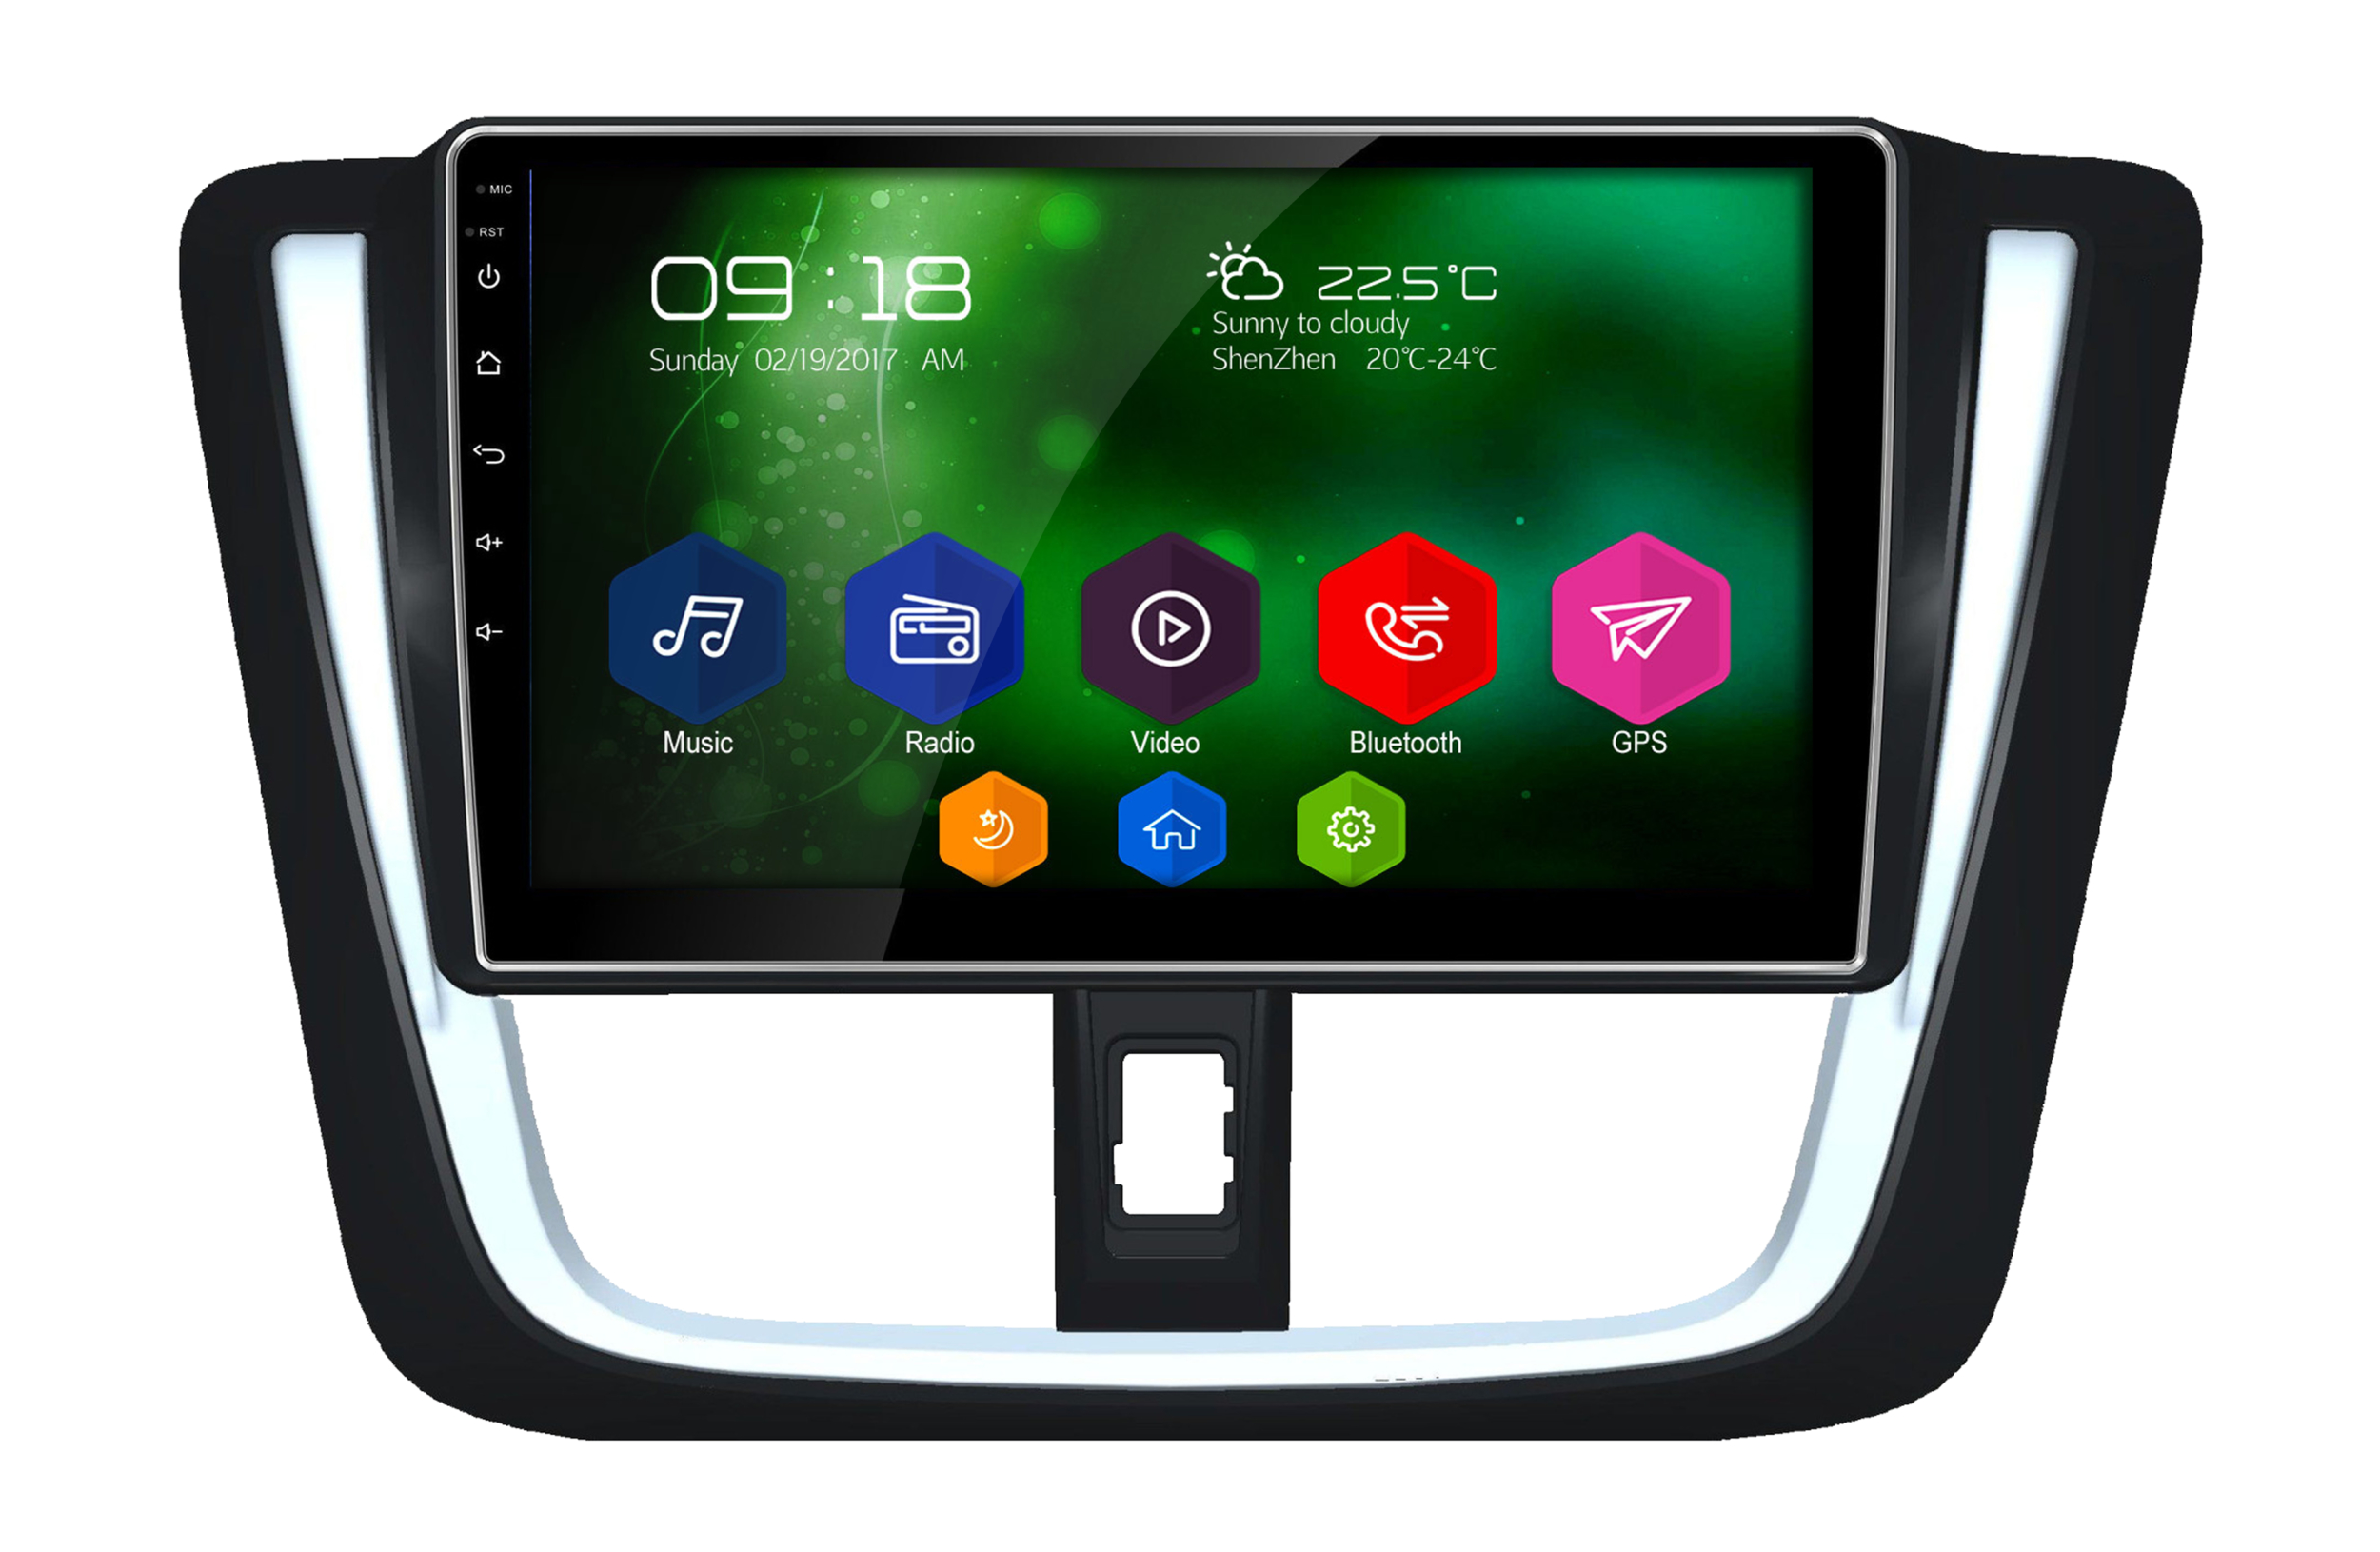 cran tactile 10 android 6 0 gps wifi toyota yaris depuis 2016. Black Bedroom Furniture Sets. Home Design Ideas